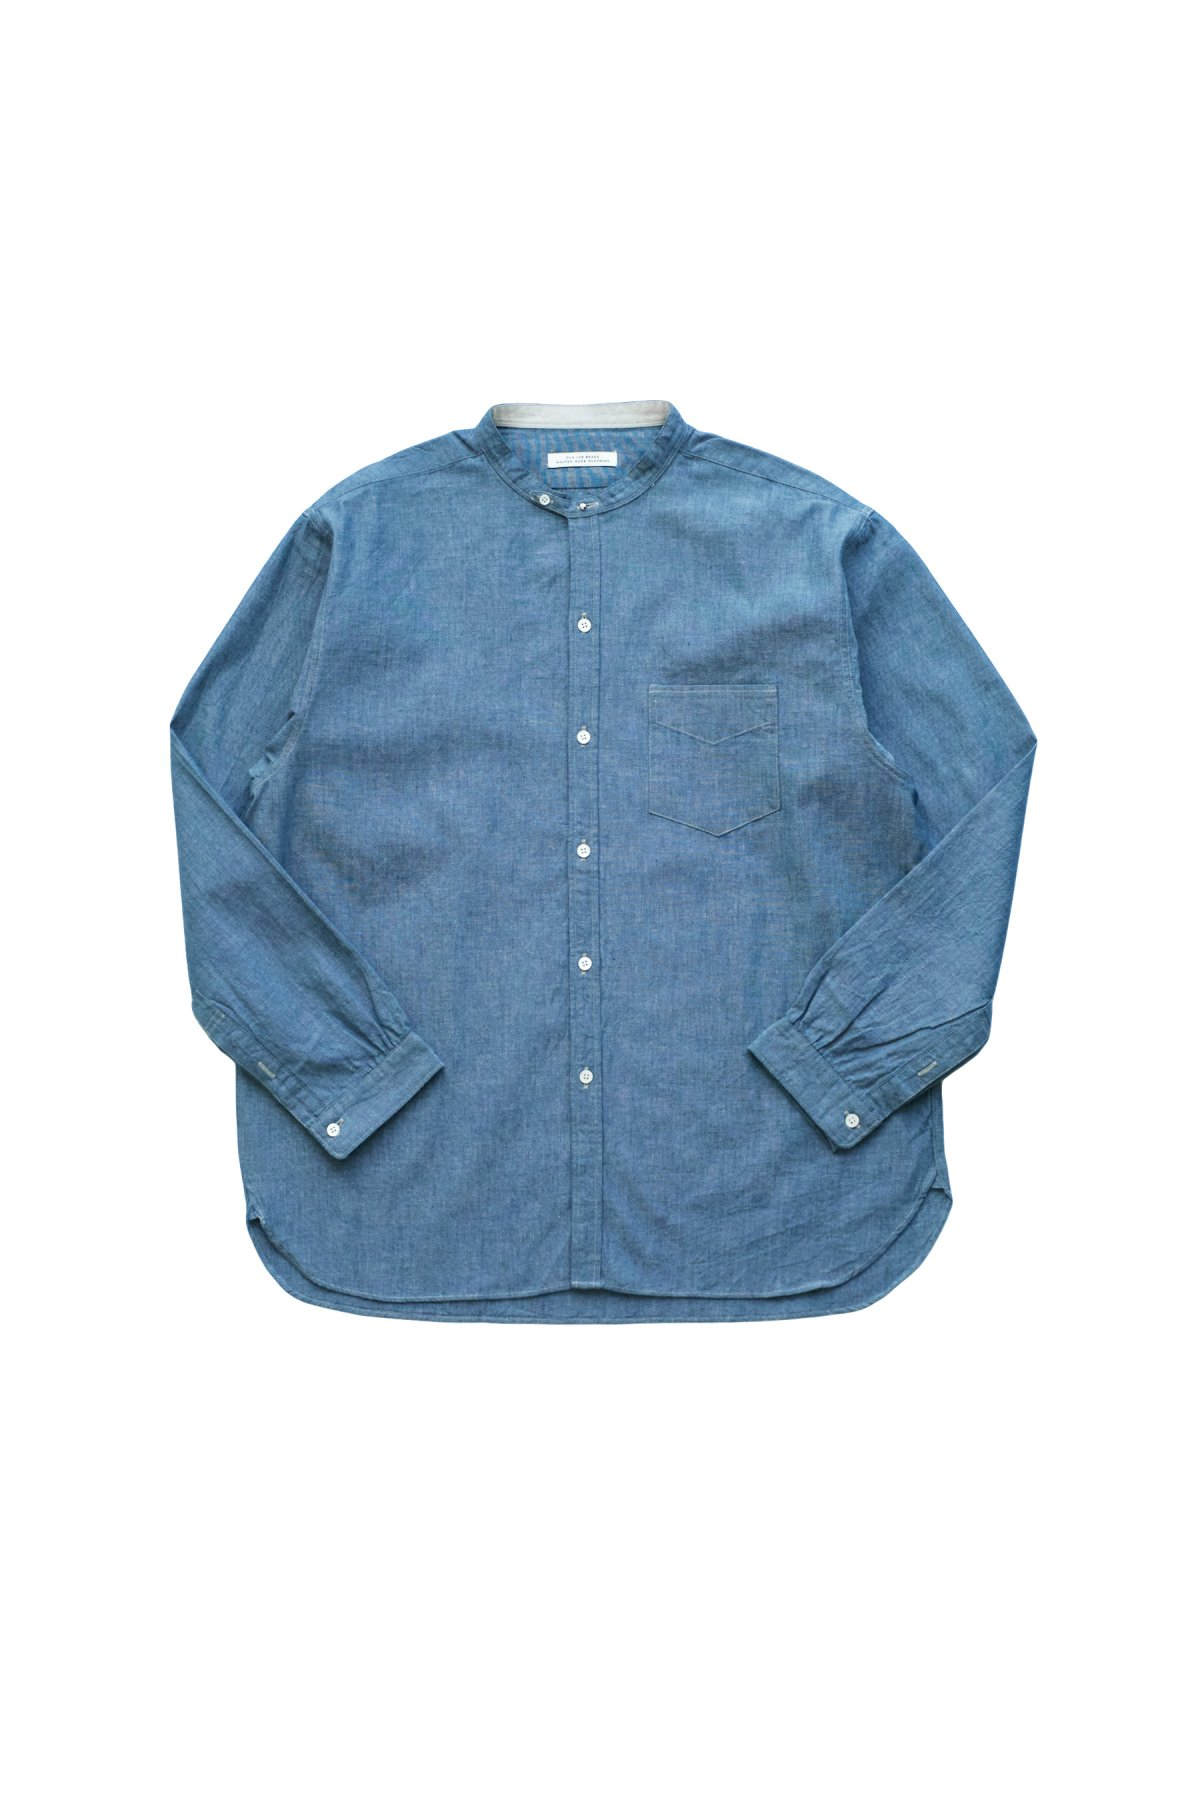 OLD JOE - STUD BUTTON BAND COLLAR SHIRTS - INDIGO CHAMBRAY - PRICE 27,500 tax-in